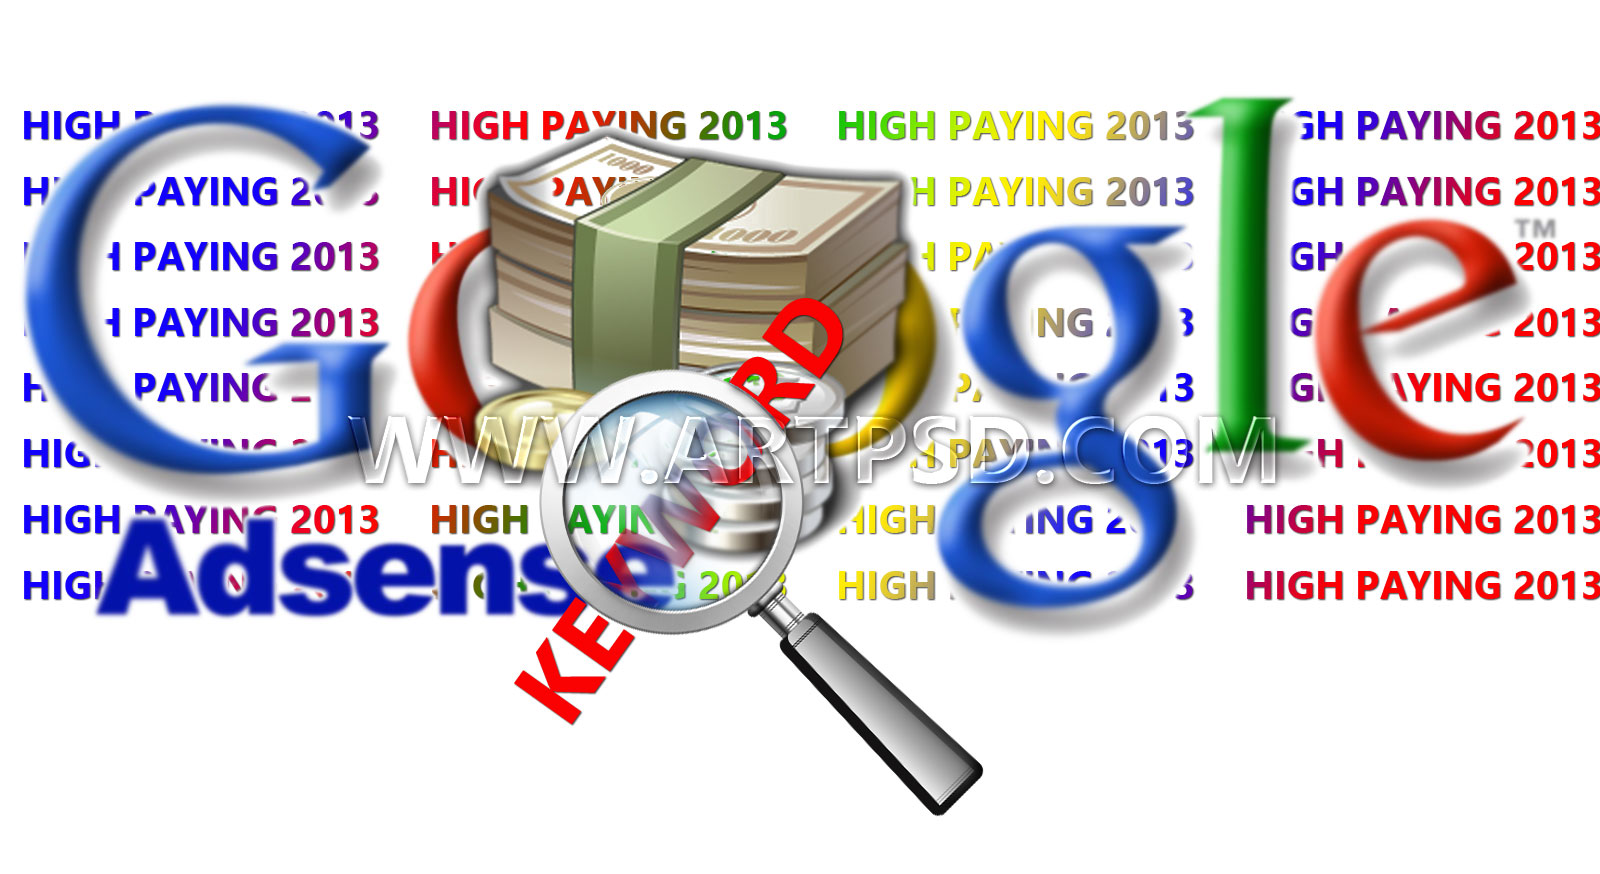 Most-High-Paying-Google-AdSense-Keywords-for-year-2013-Increase-your-revenues-from-Google-with-these-keywords